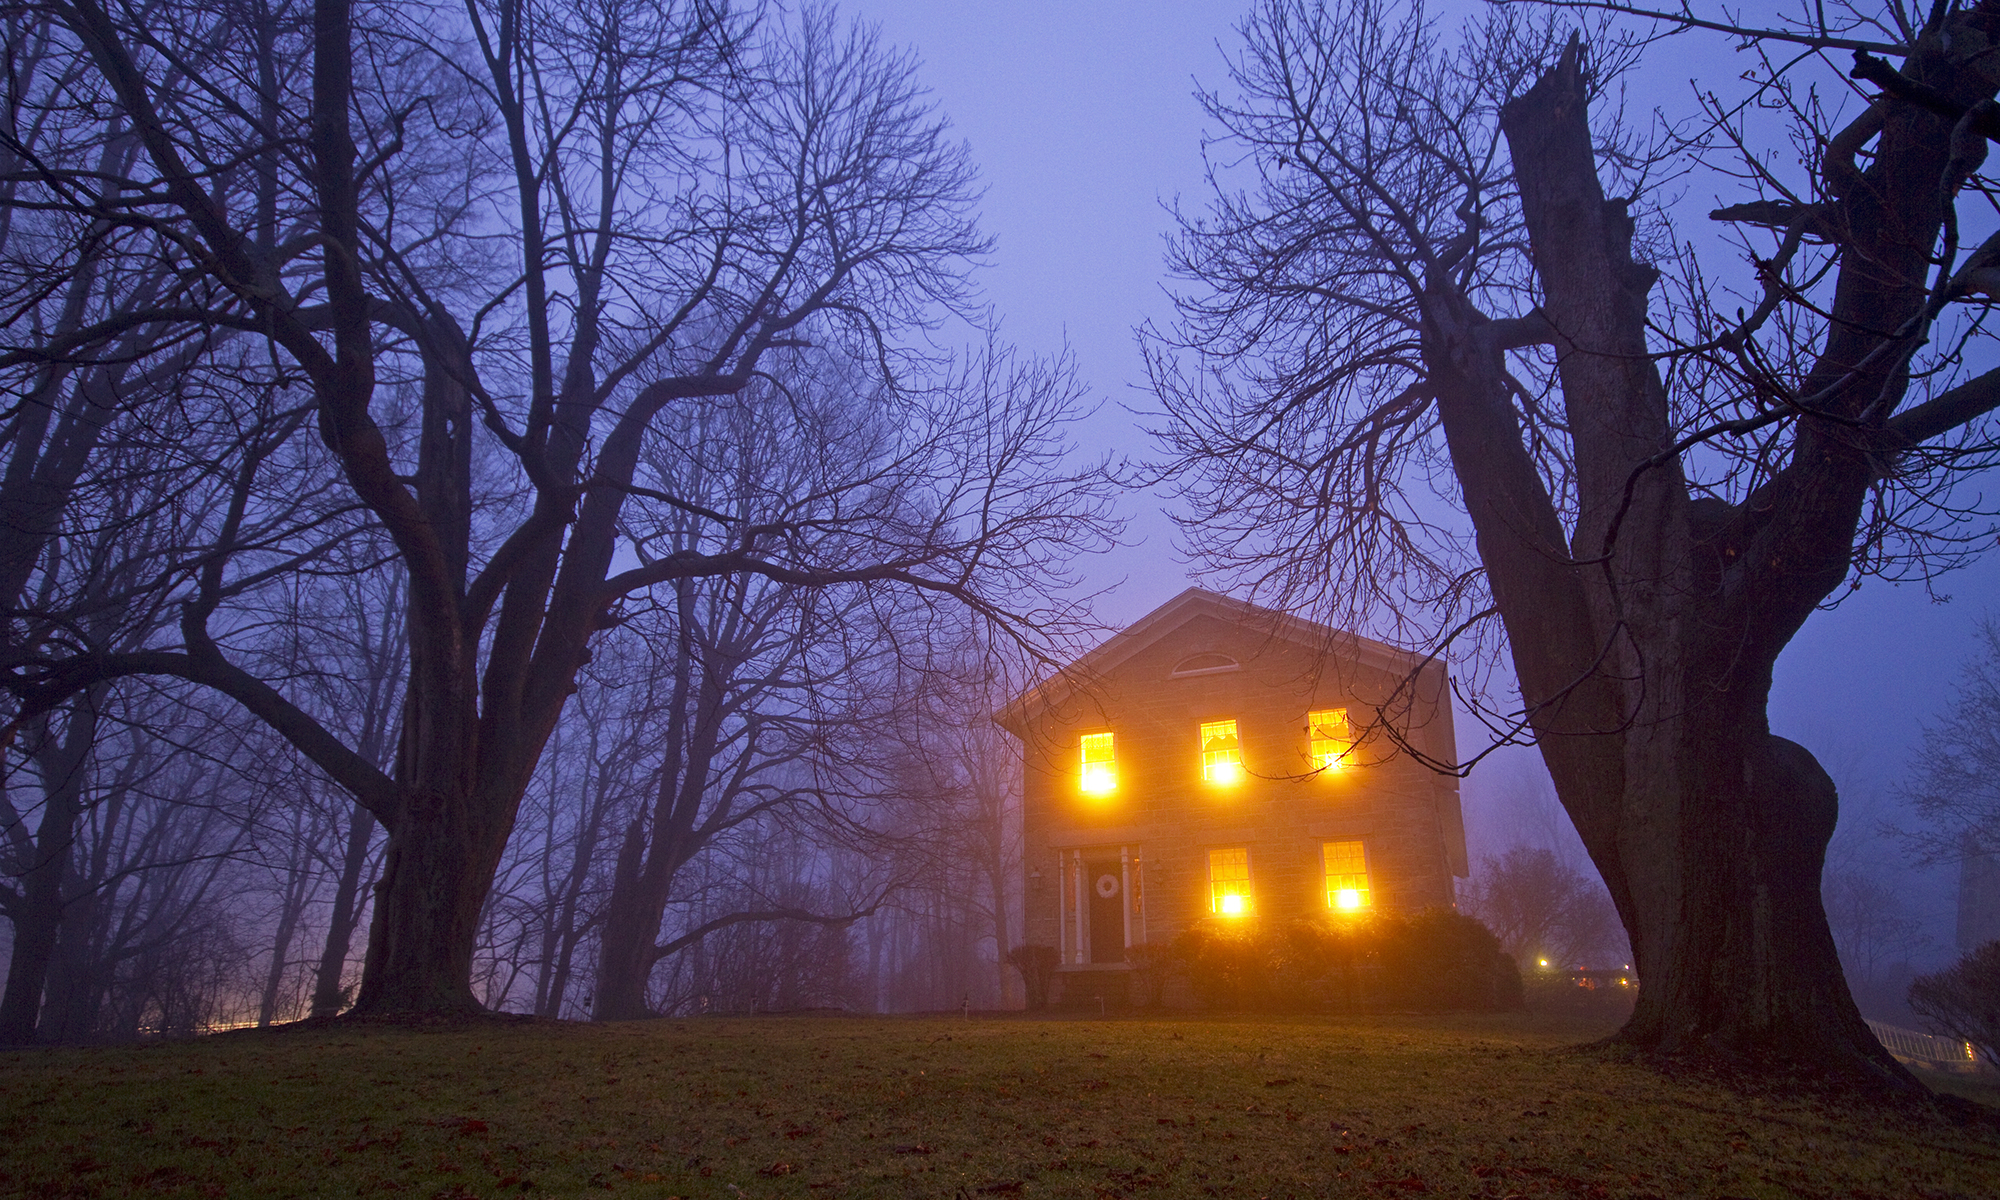 What's Causing Those Spooky Sounds & Smells?